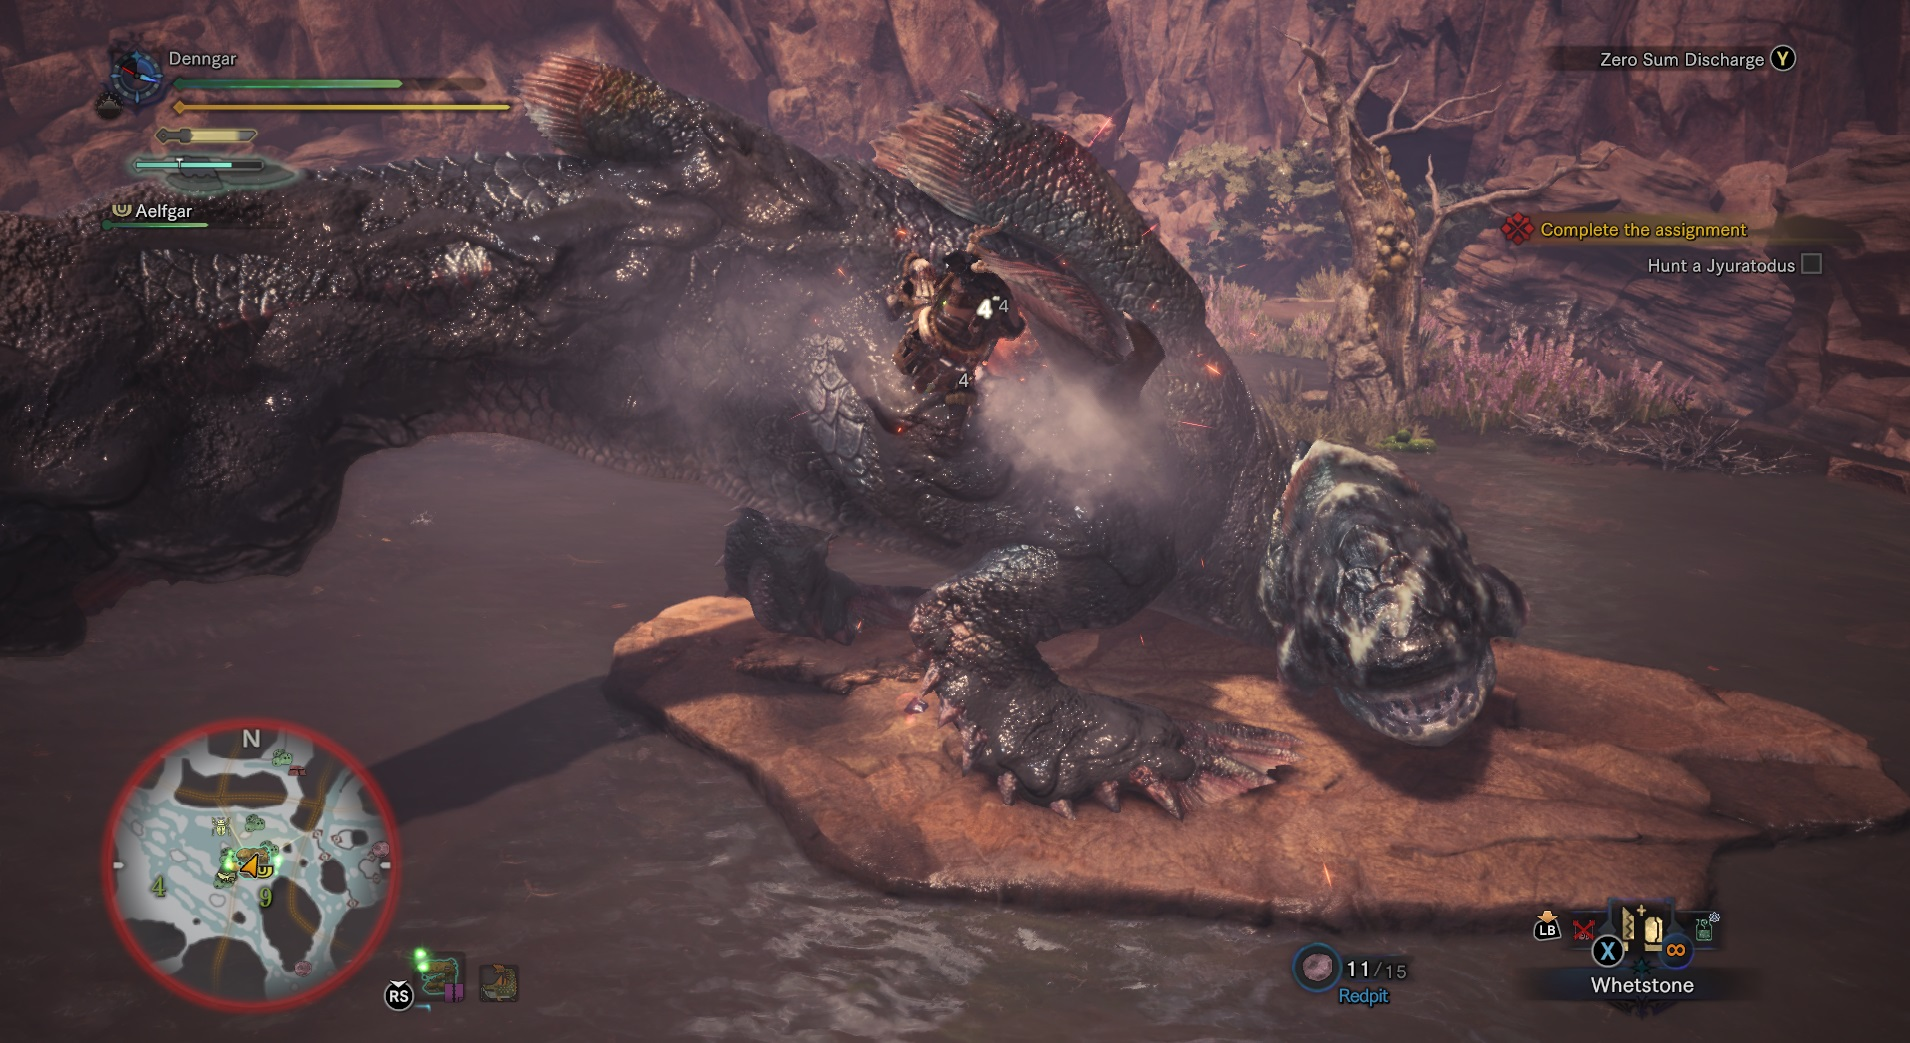 Hands on with monster hunter world pc 'a quick and